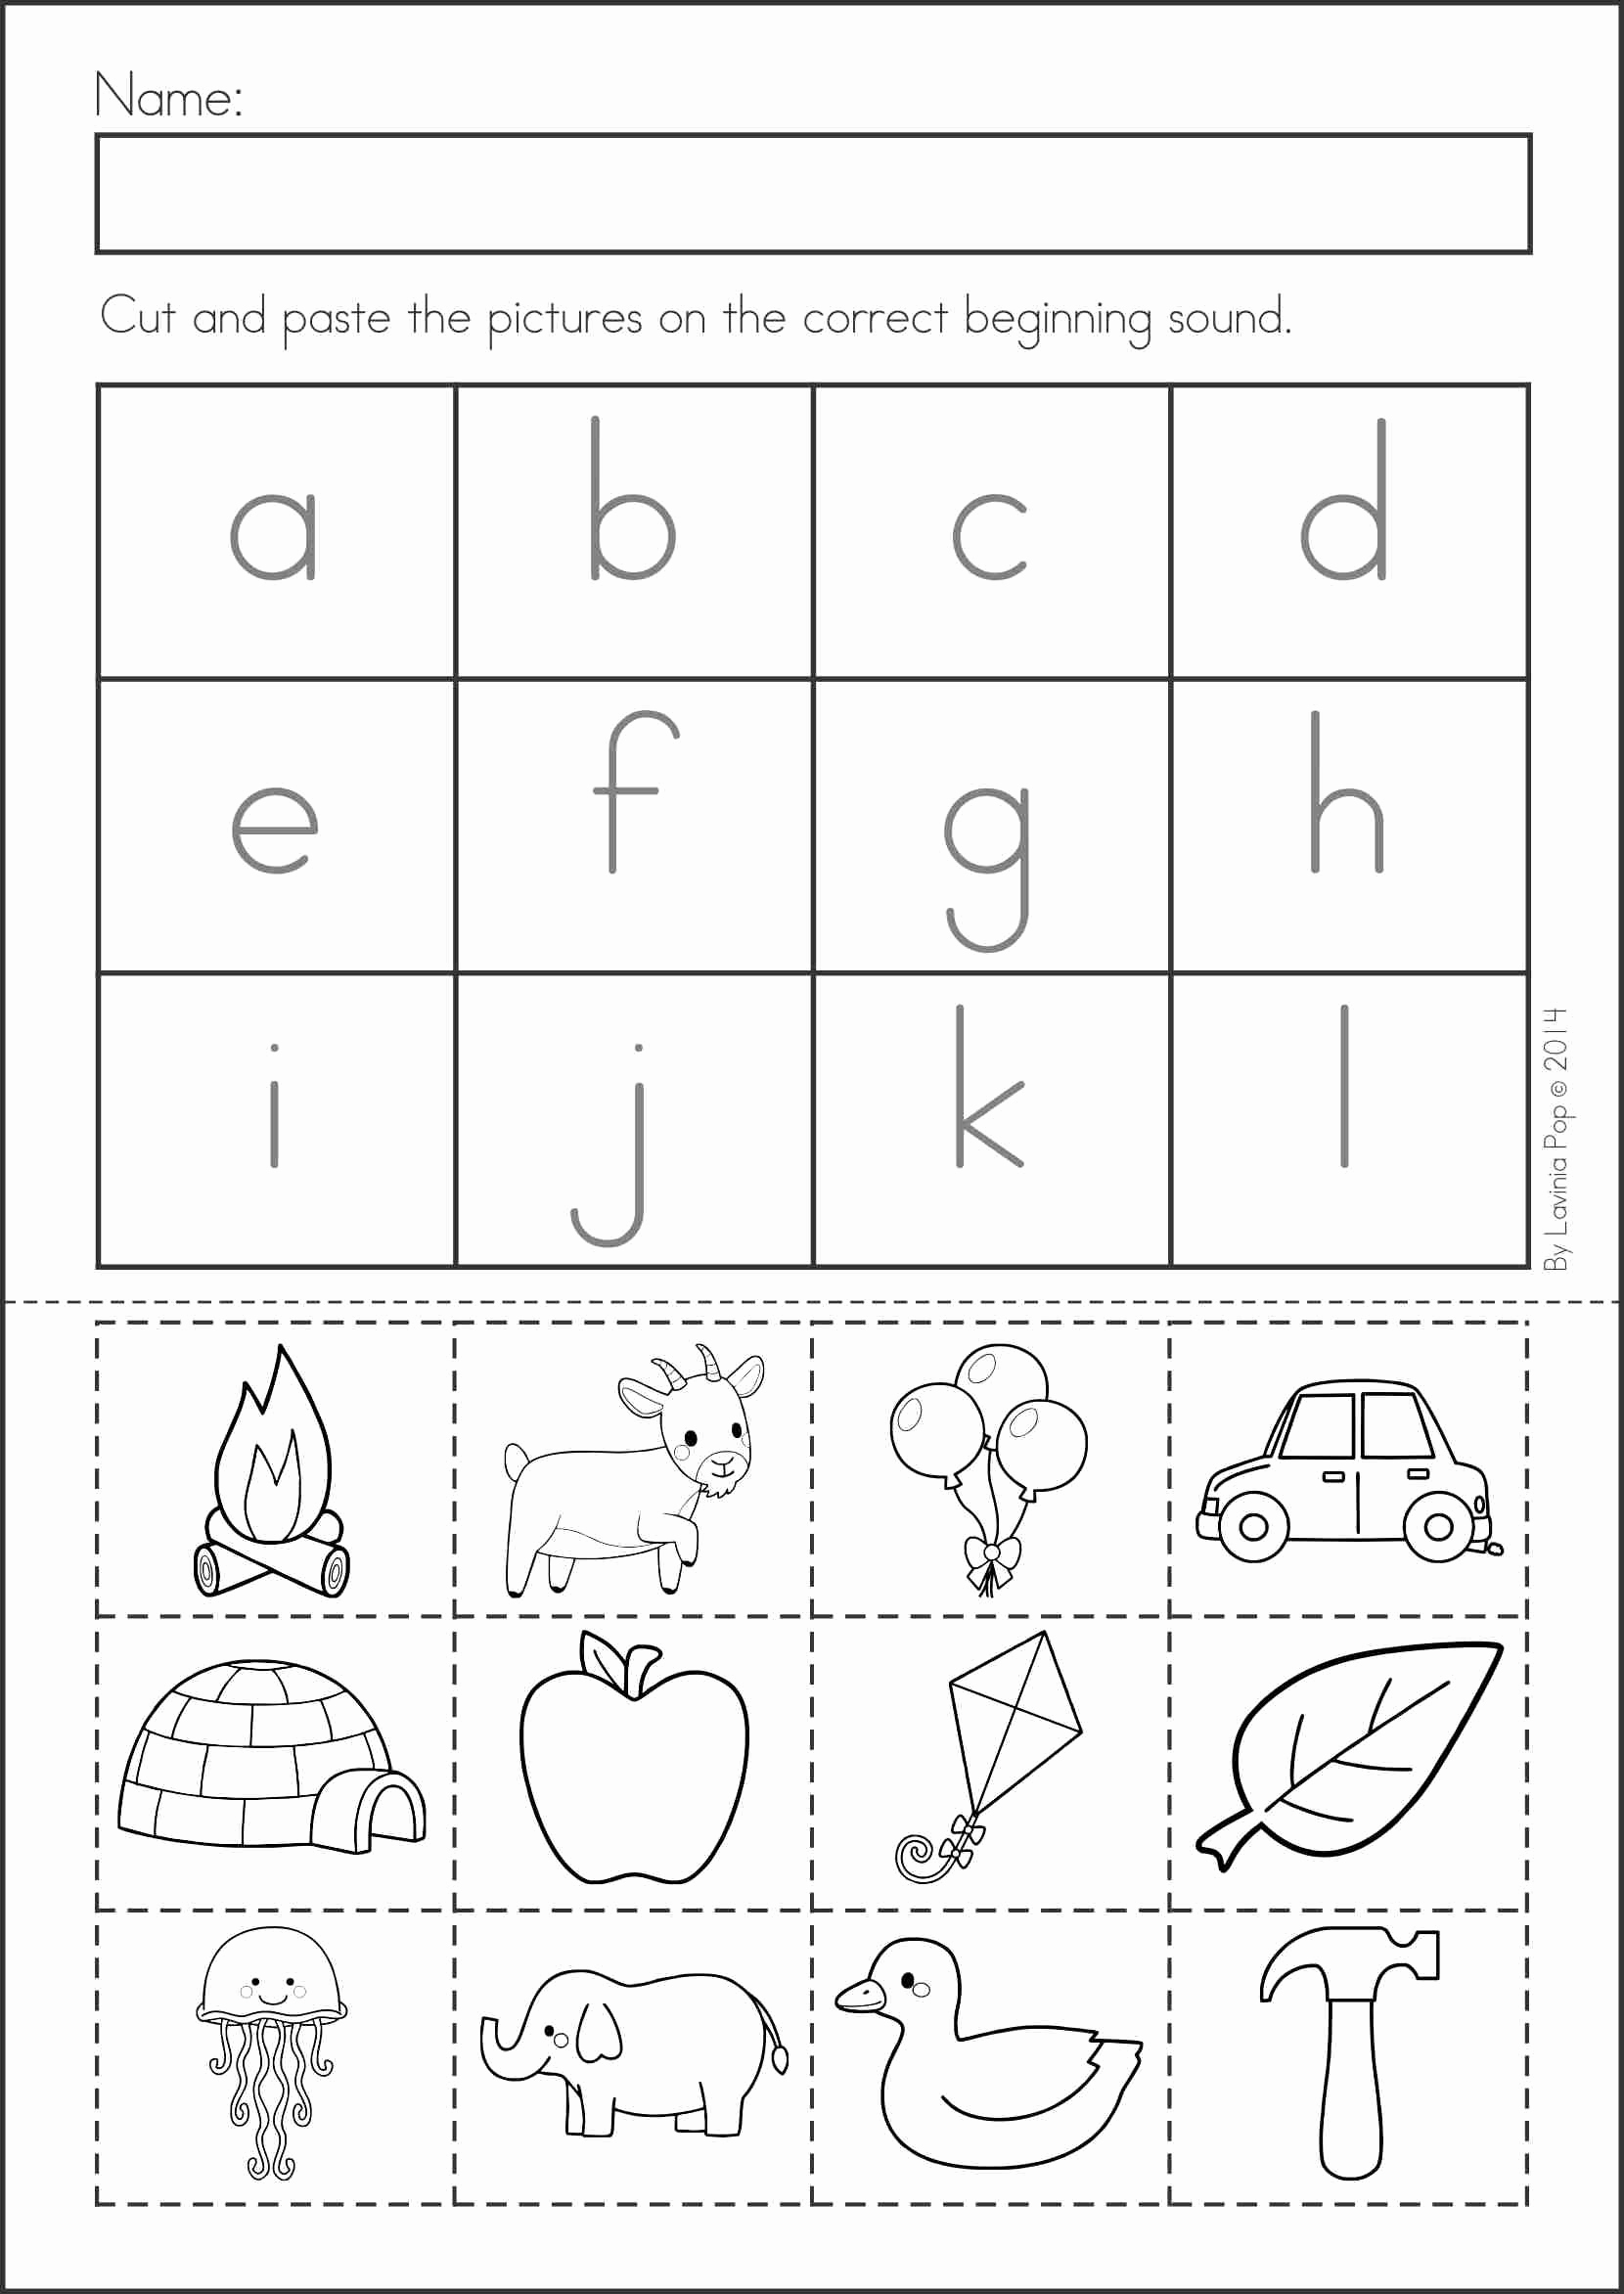 Cut and Paste Worksheets Free Unique Free Printable Cut and Paste Worksheets for Kindergarten